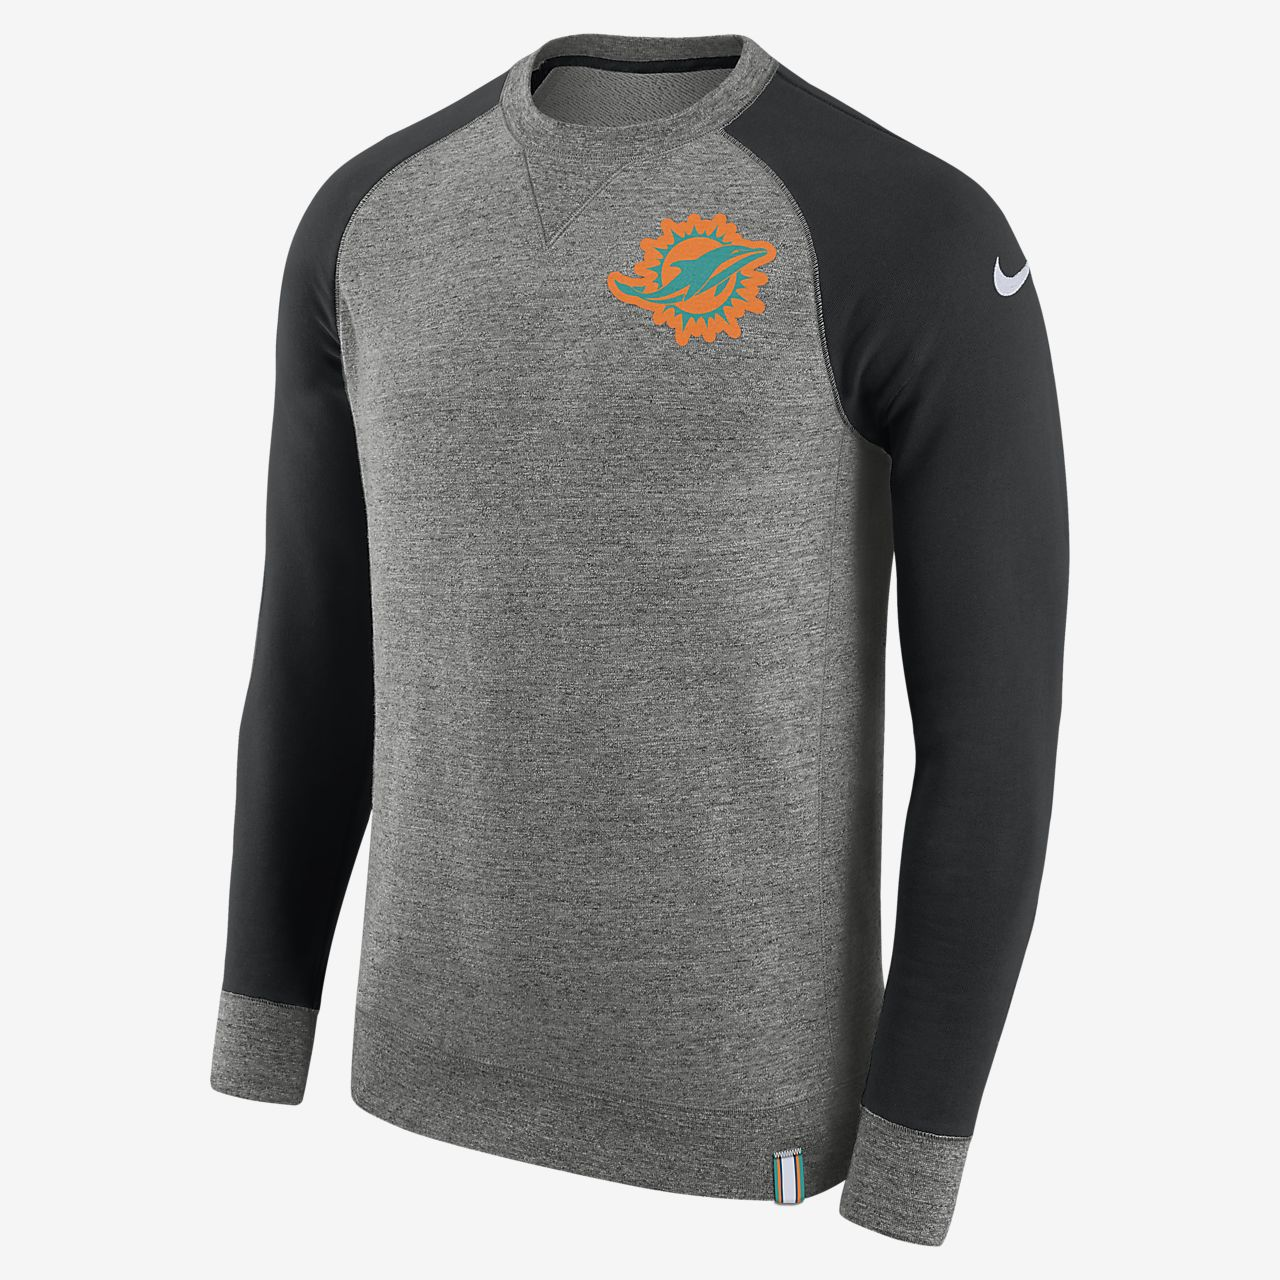 Sweat-shirt Nike AW77 (NFL Dolphins) pour Homme